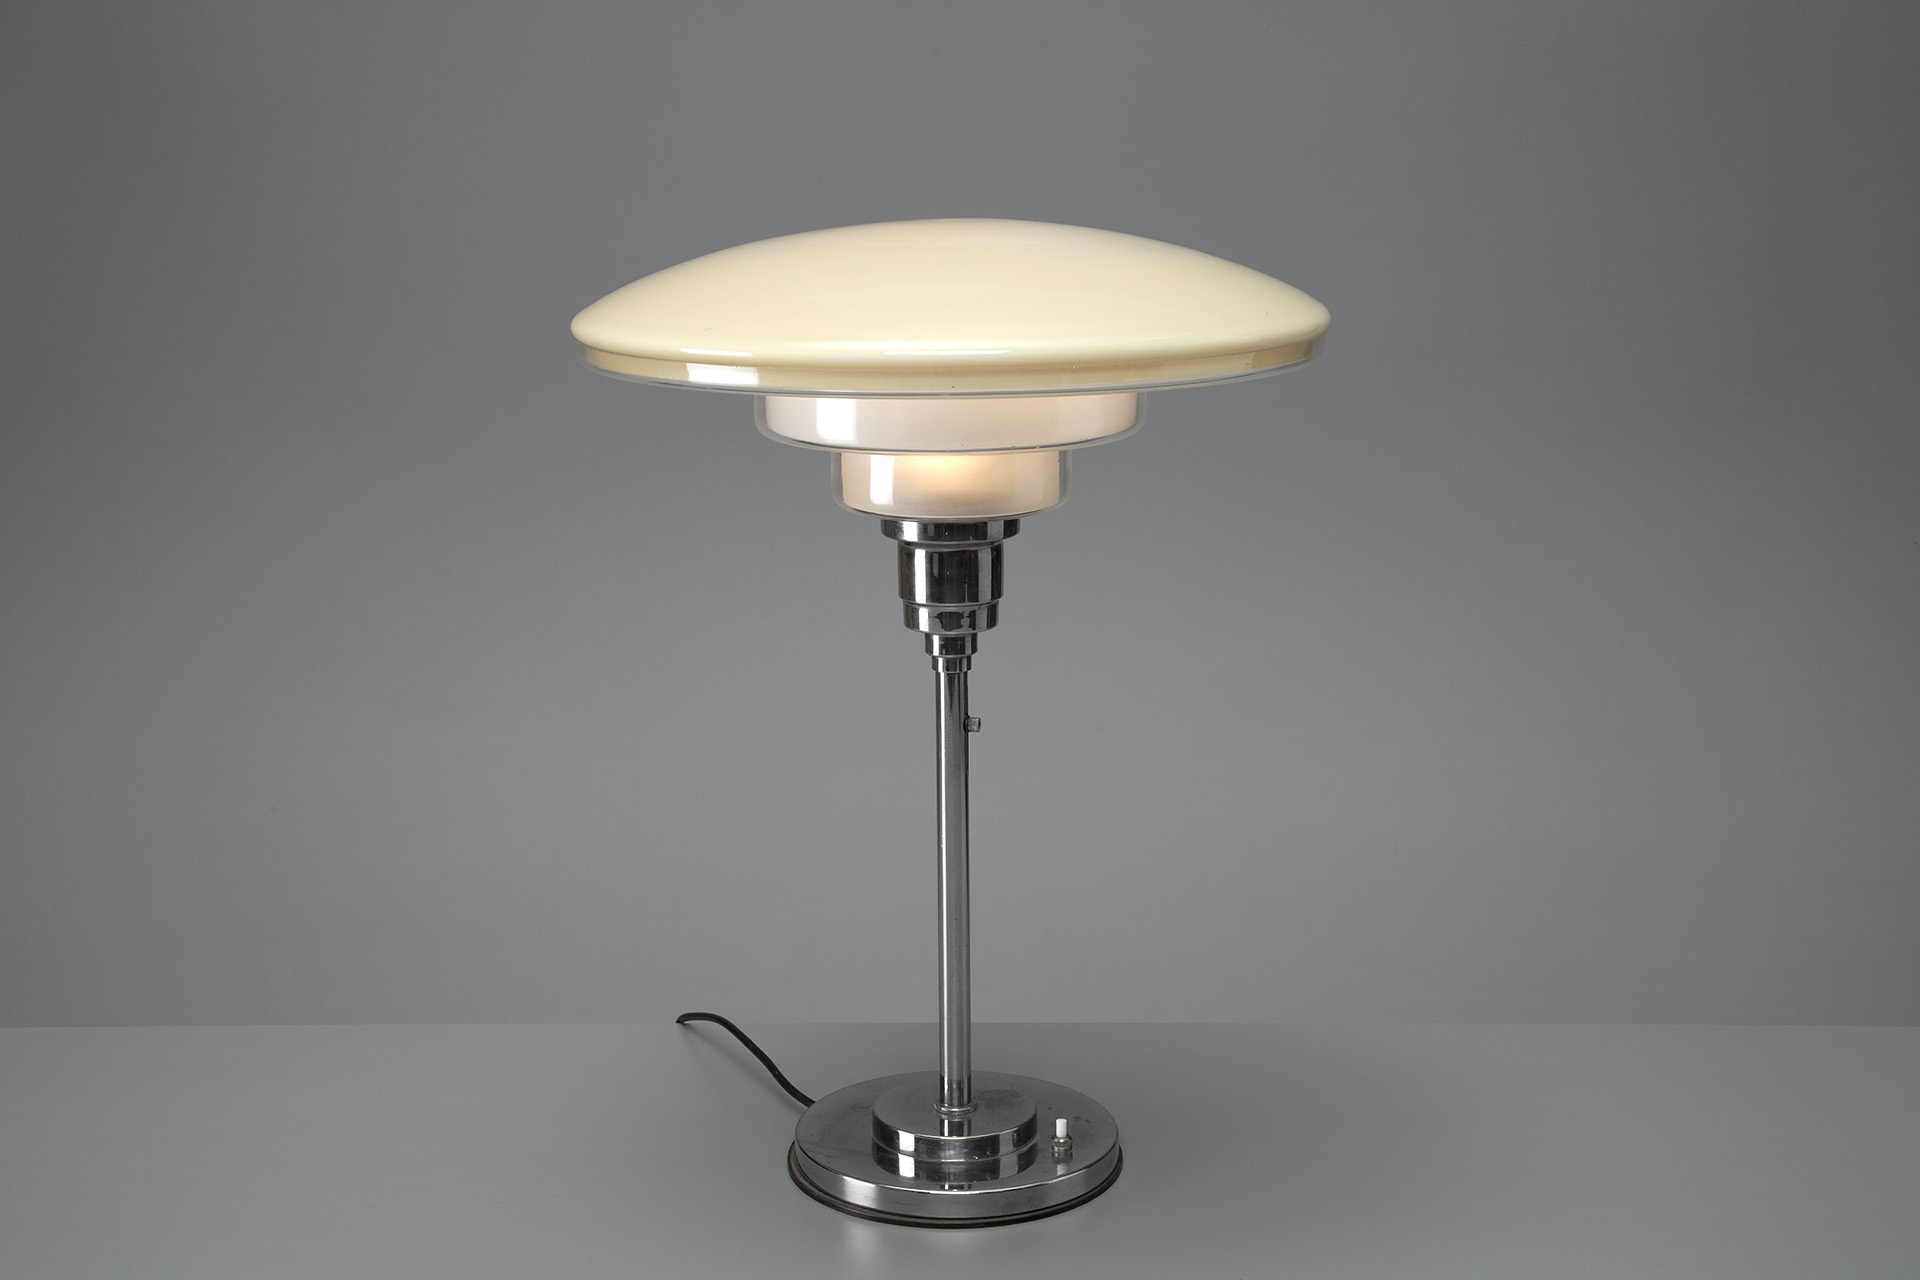 Jacksons extra large sistrah table lamp cf otto mller extra large sistrah table lamp aloadofball Gallery